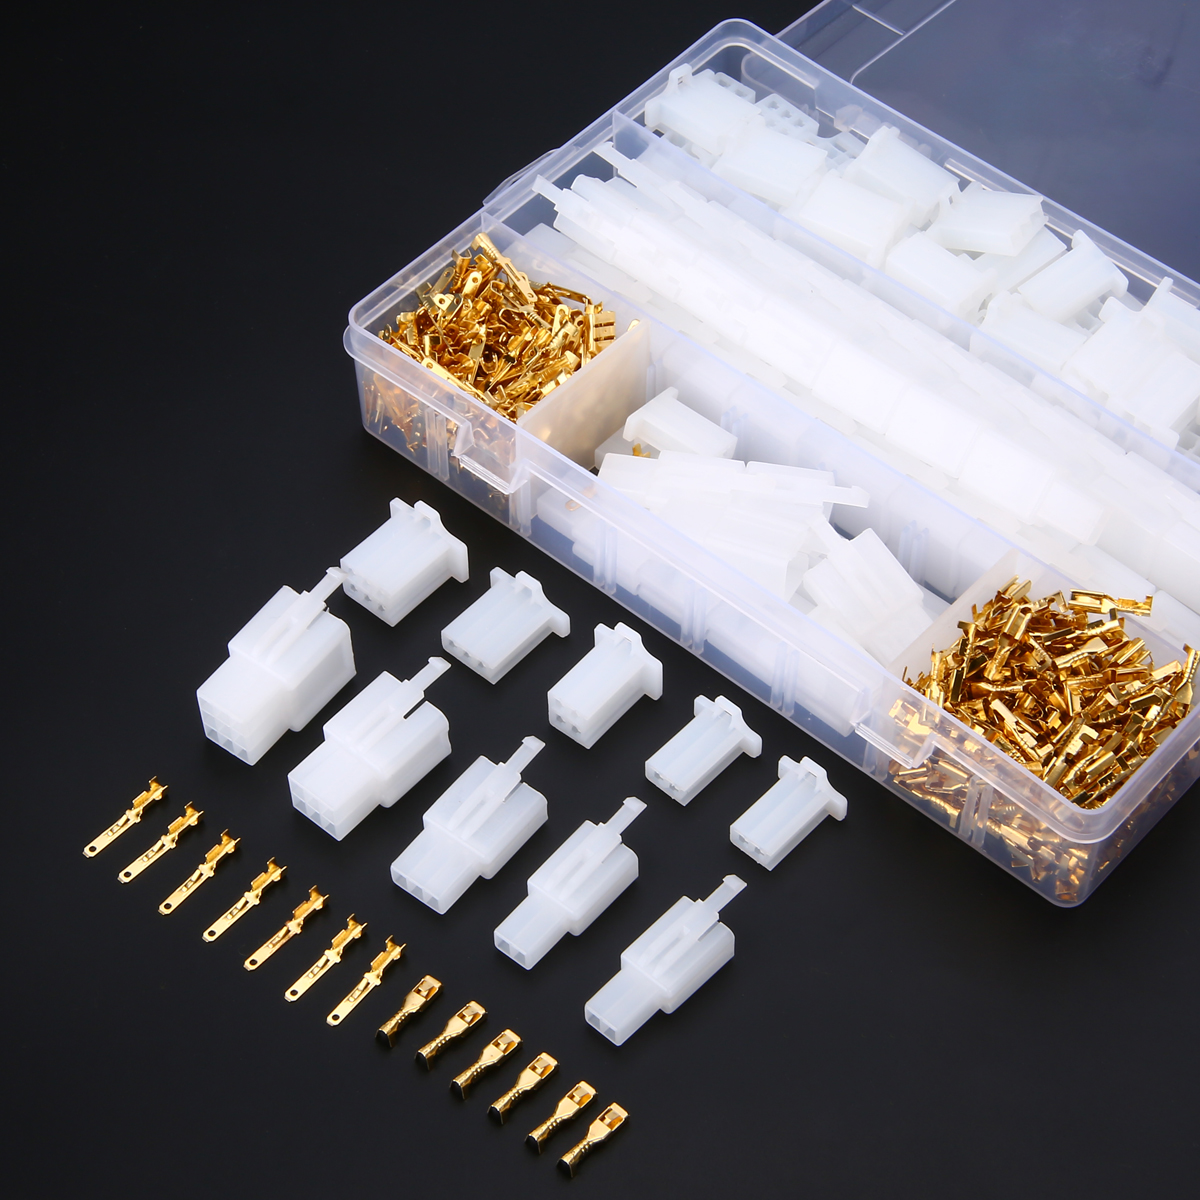 hight resolution of 2 8mm electrical wire connector 2 3 4 6 9 pin male female terminal plug 580pcs car audio